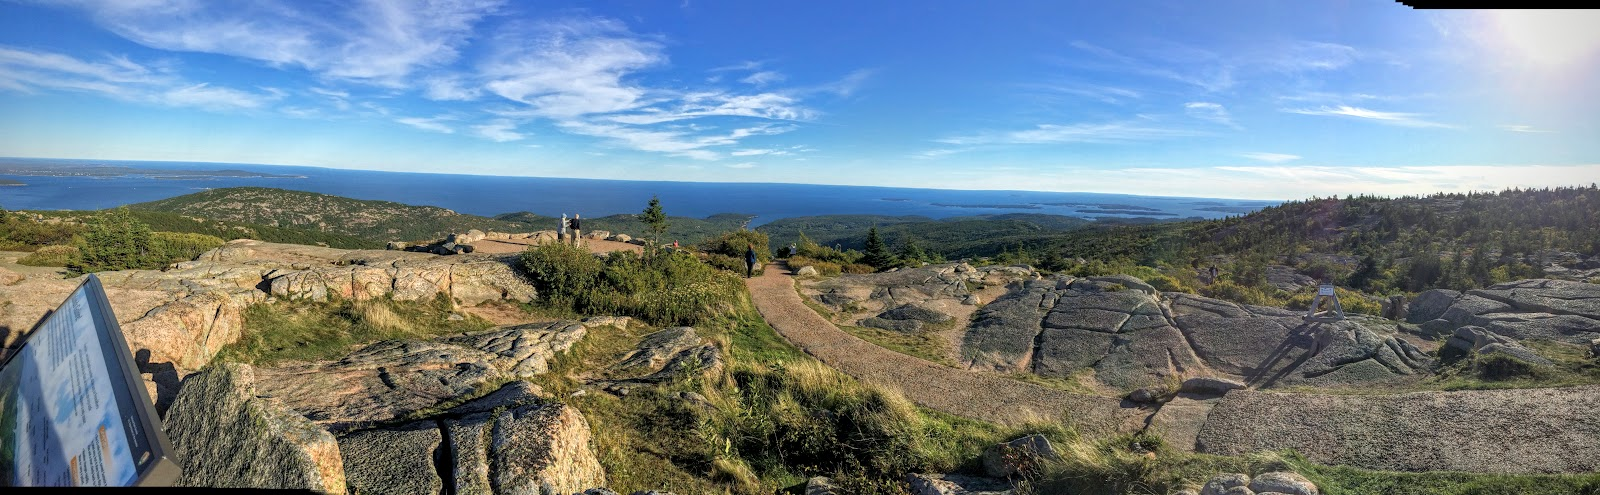 A pano from the top of Cadillac Mountain looking south into the Atlantic.